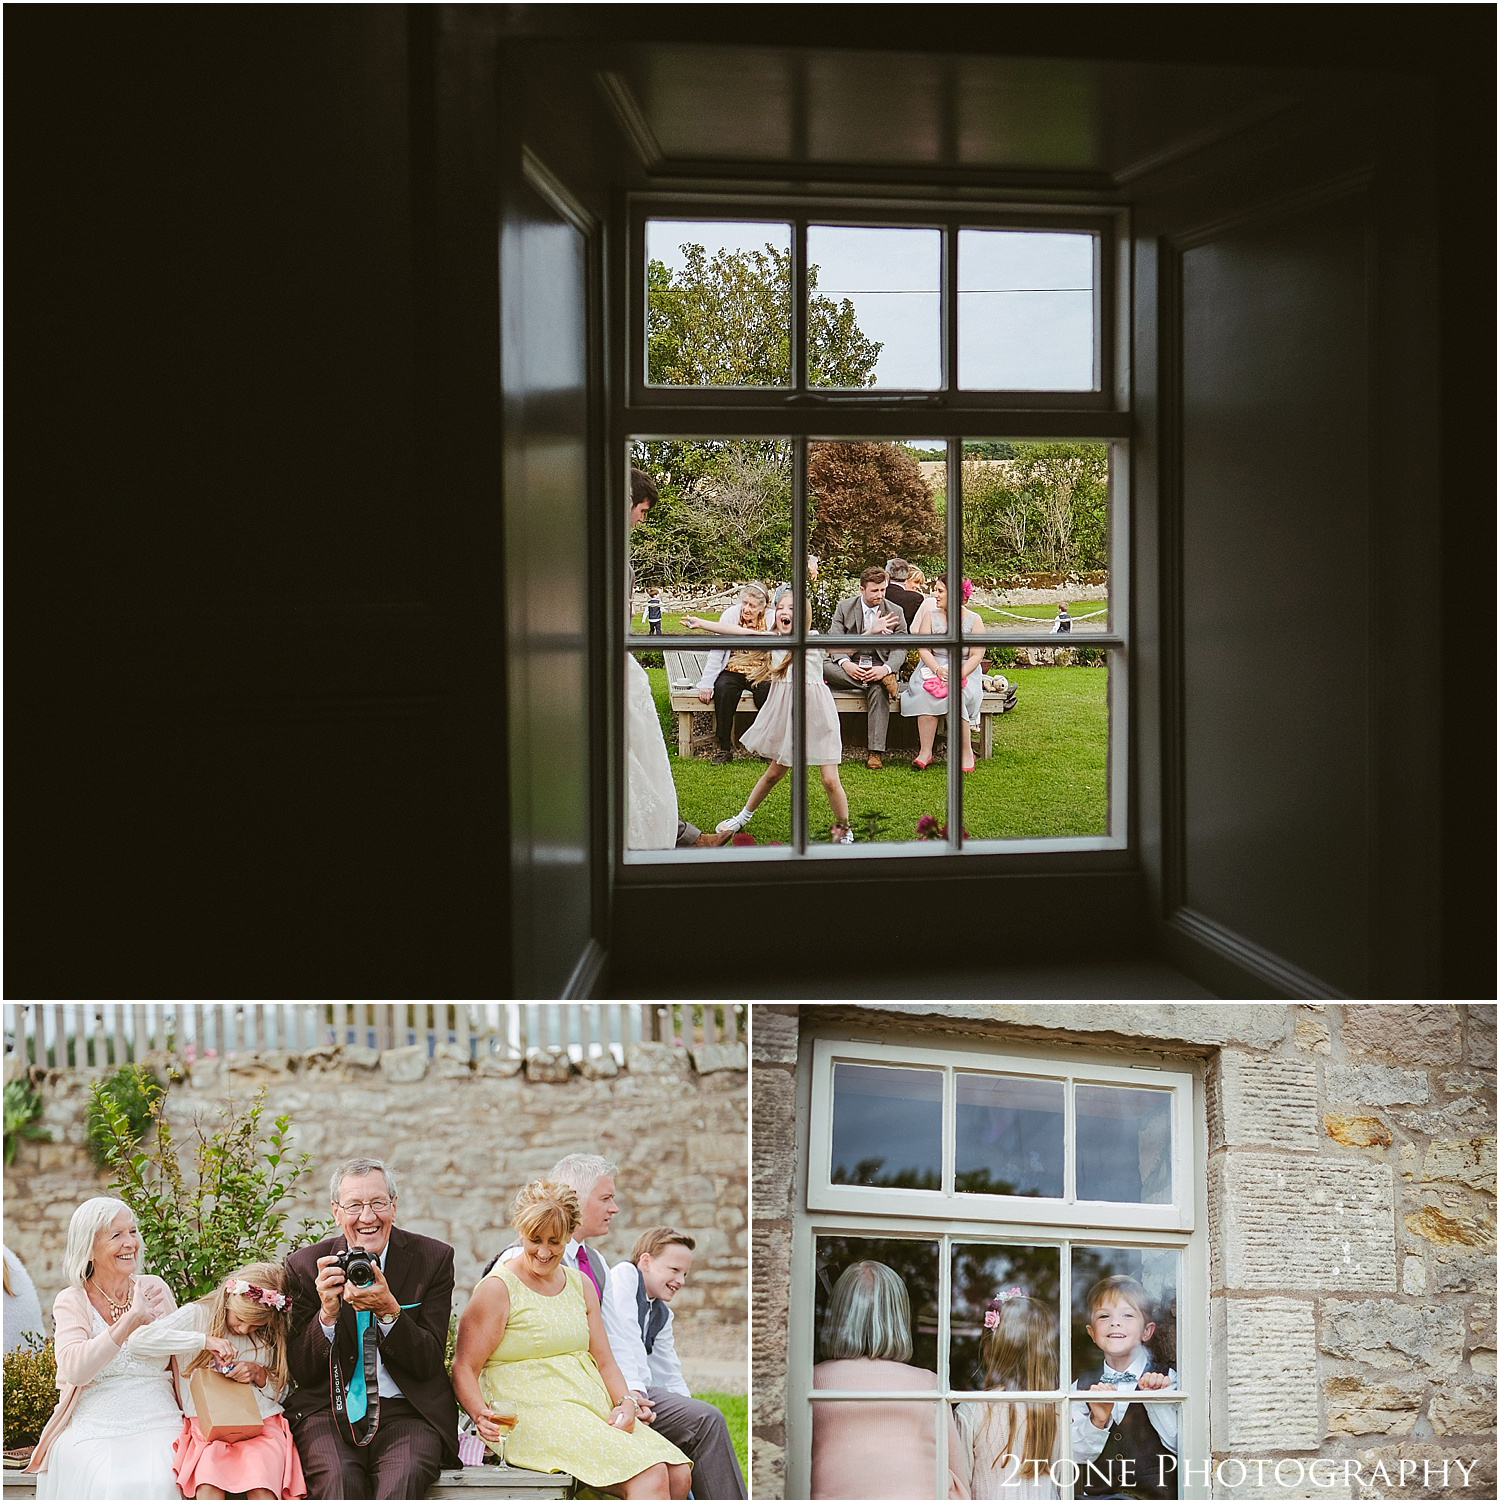 Doxford barns wedding photographer 071.jpg